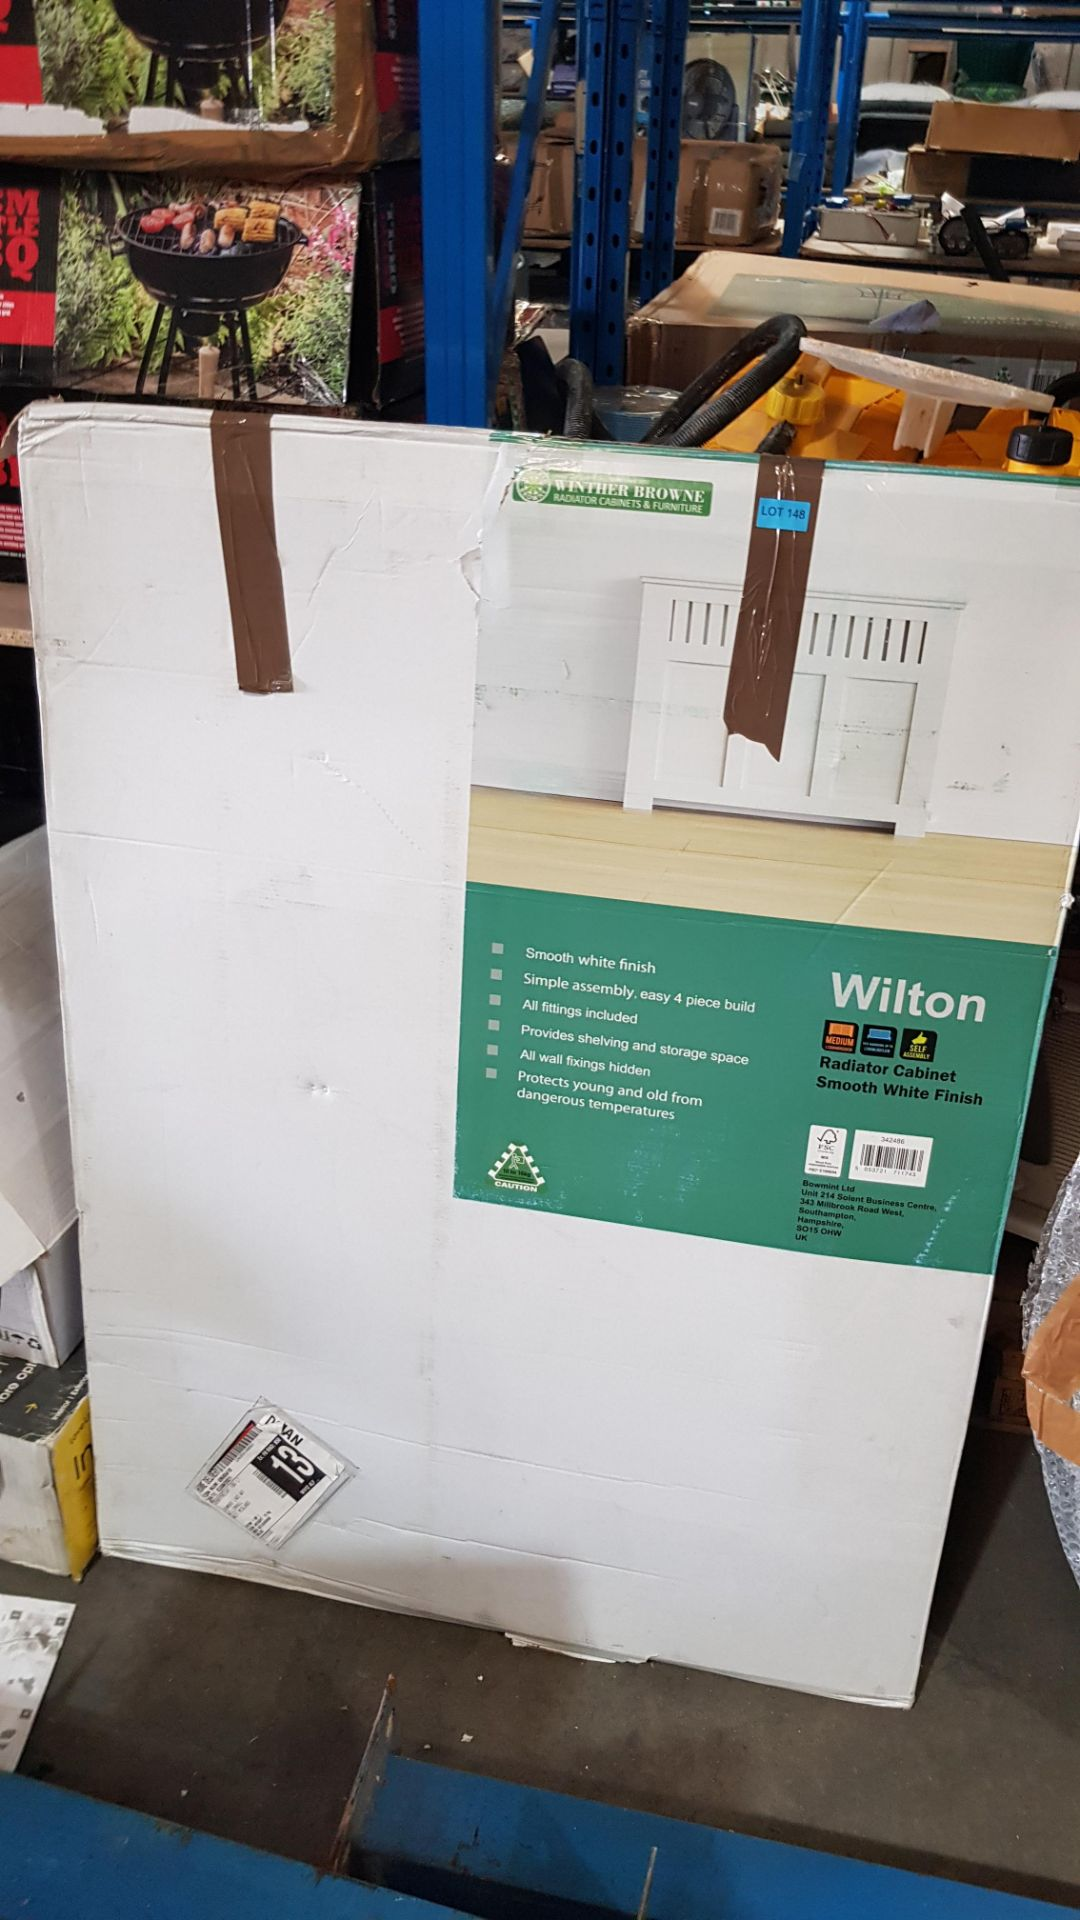 (3F) 1x Winther Browne Wilton Radiator Cabinet Smooth White Finish. - Image 3 of 4